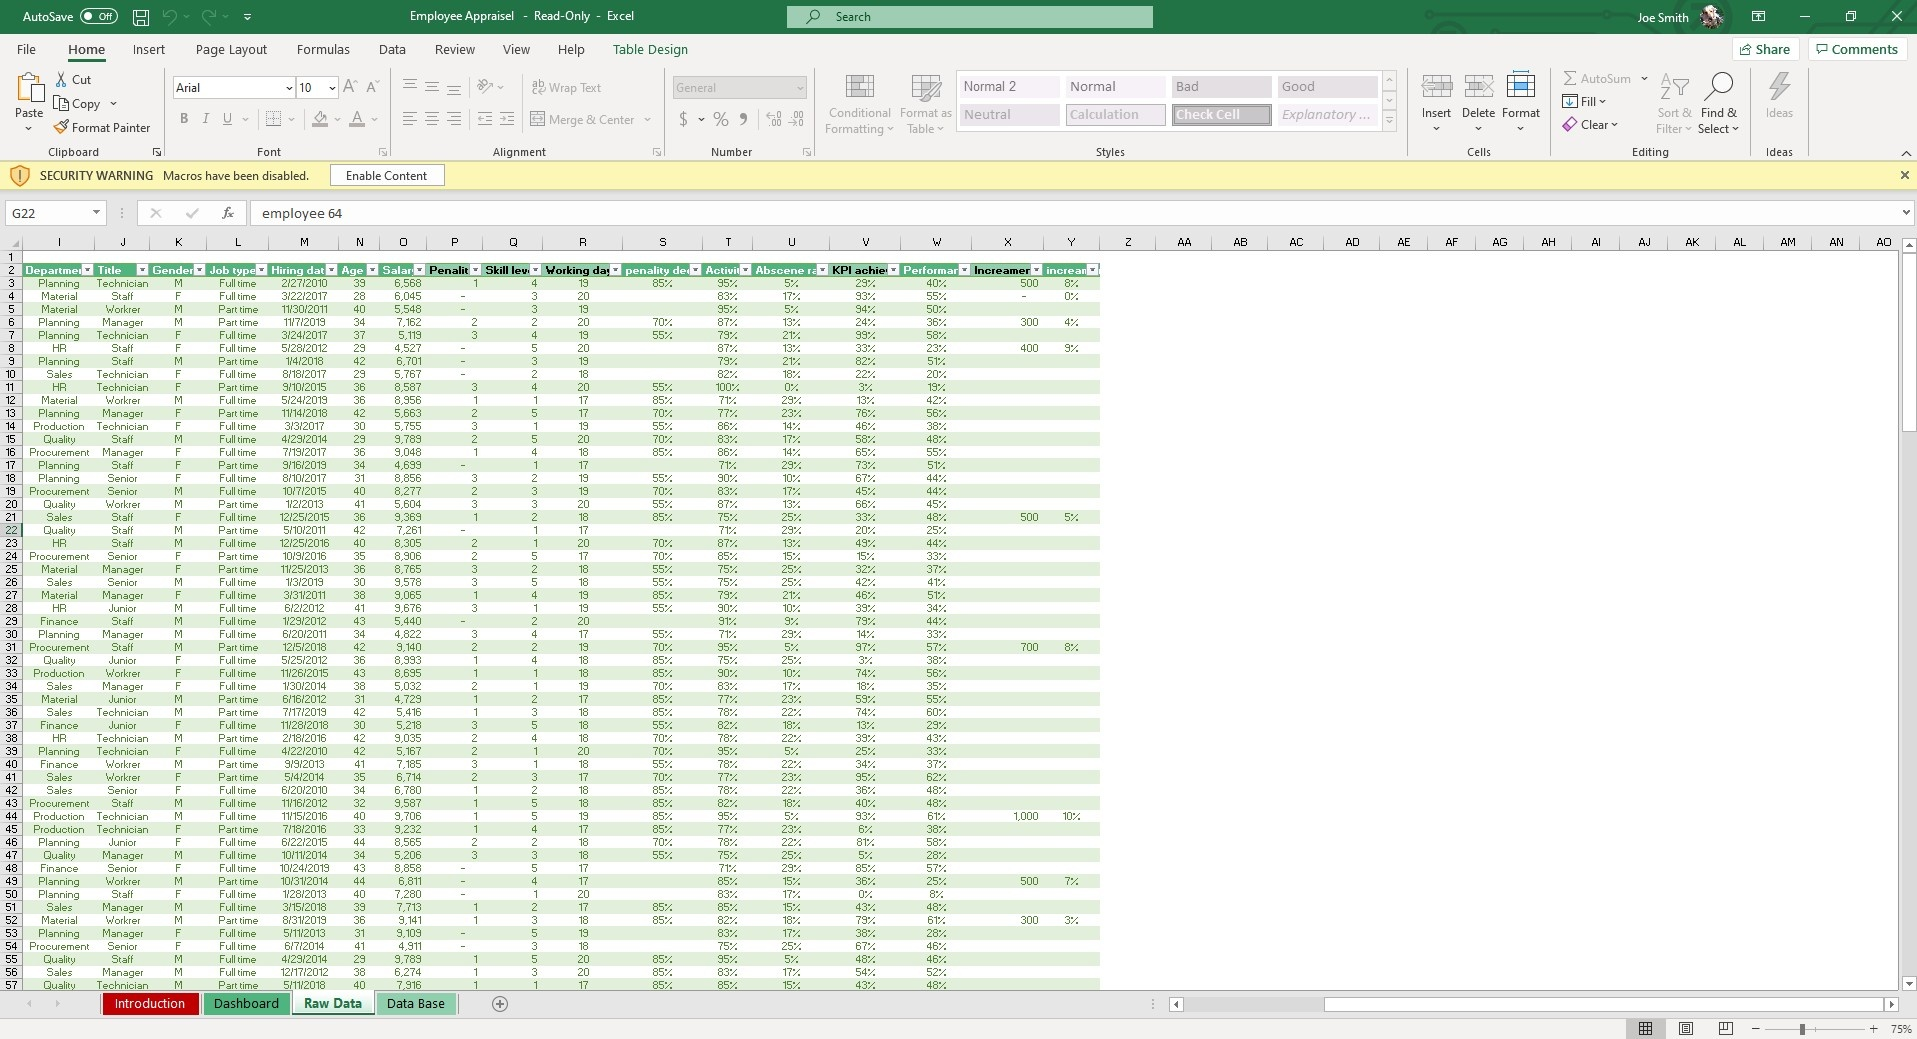 Insert Raw Data related to each employee into the Performance Employee Appraisal Excel Template.